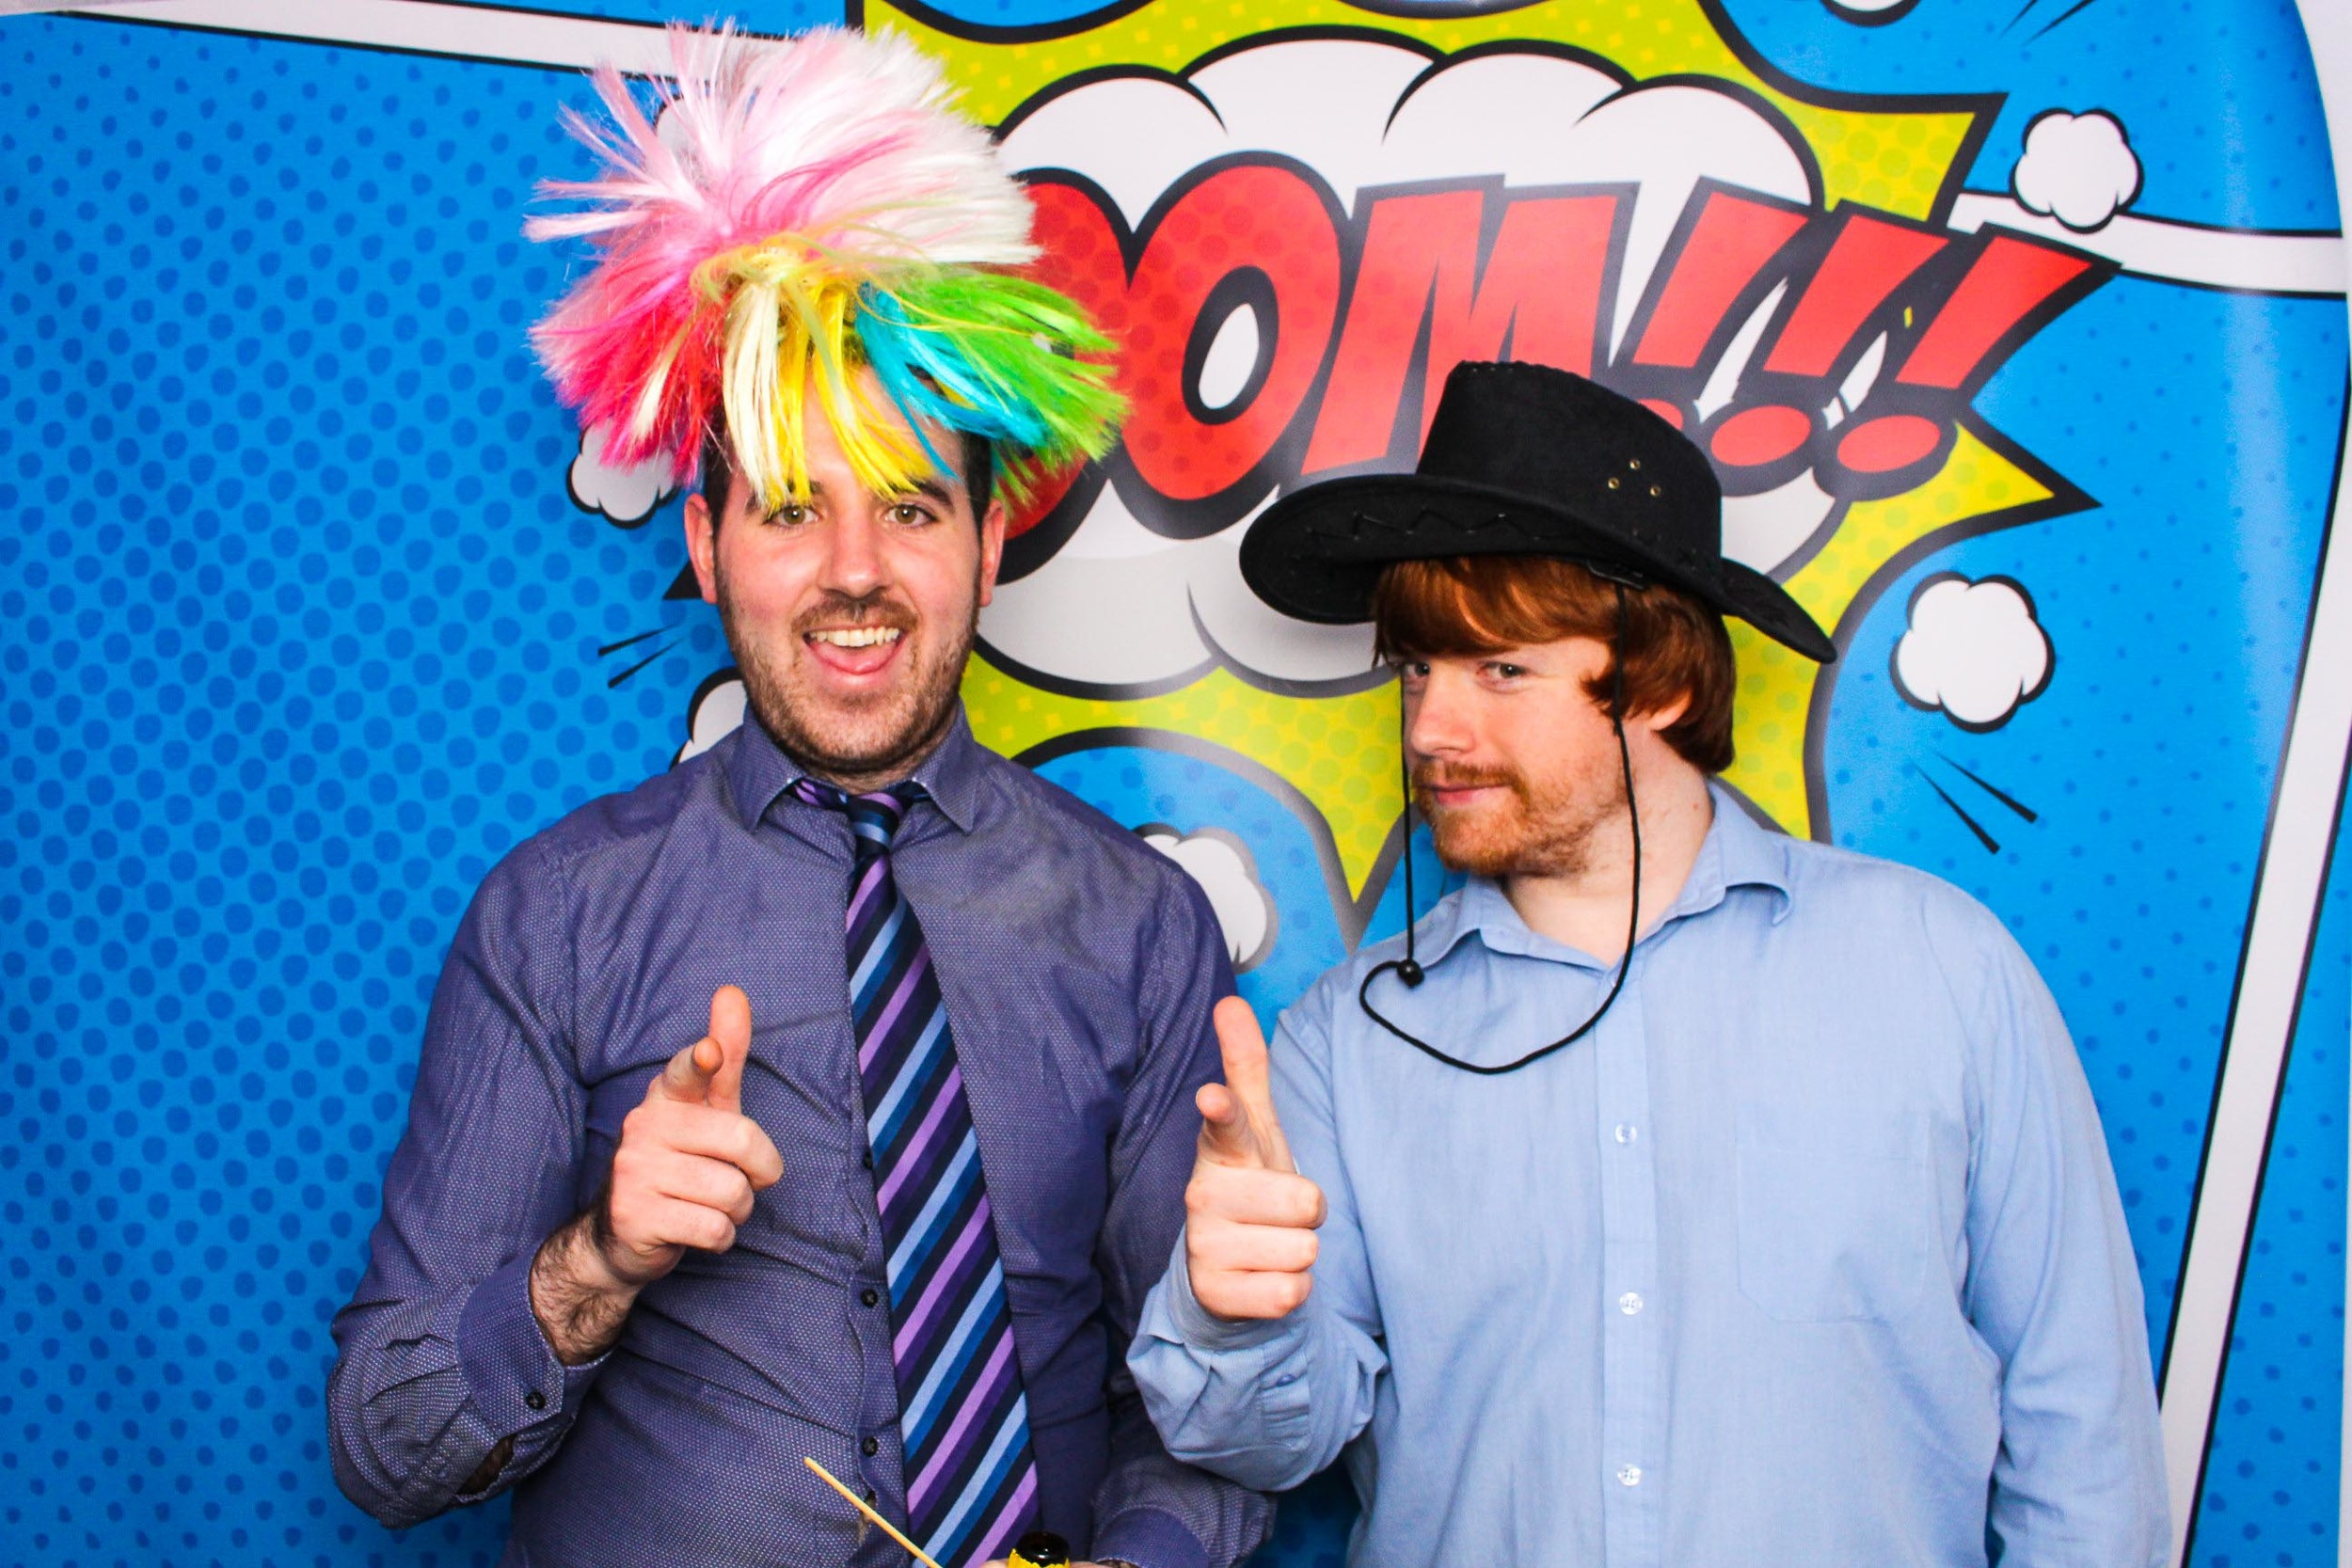 Fotoauto Photo Booth Hire - Shop Direct-342.jpg